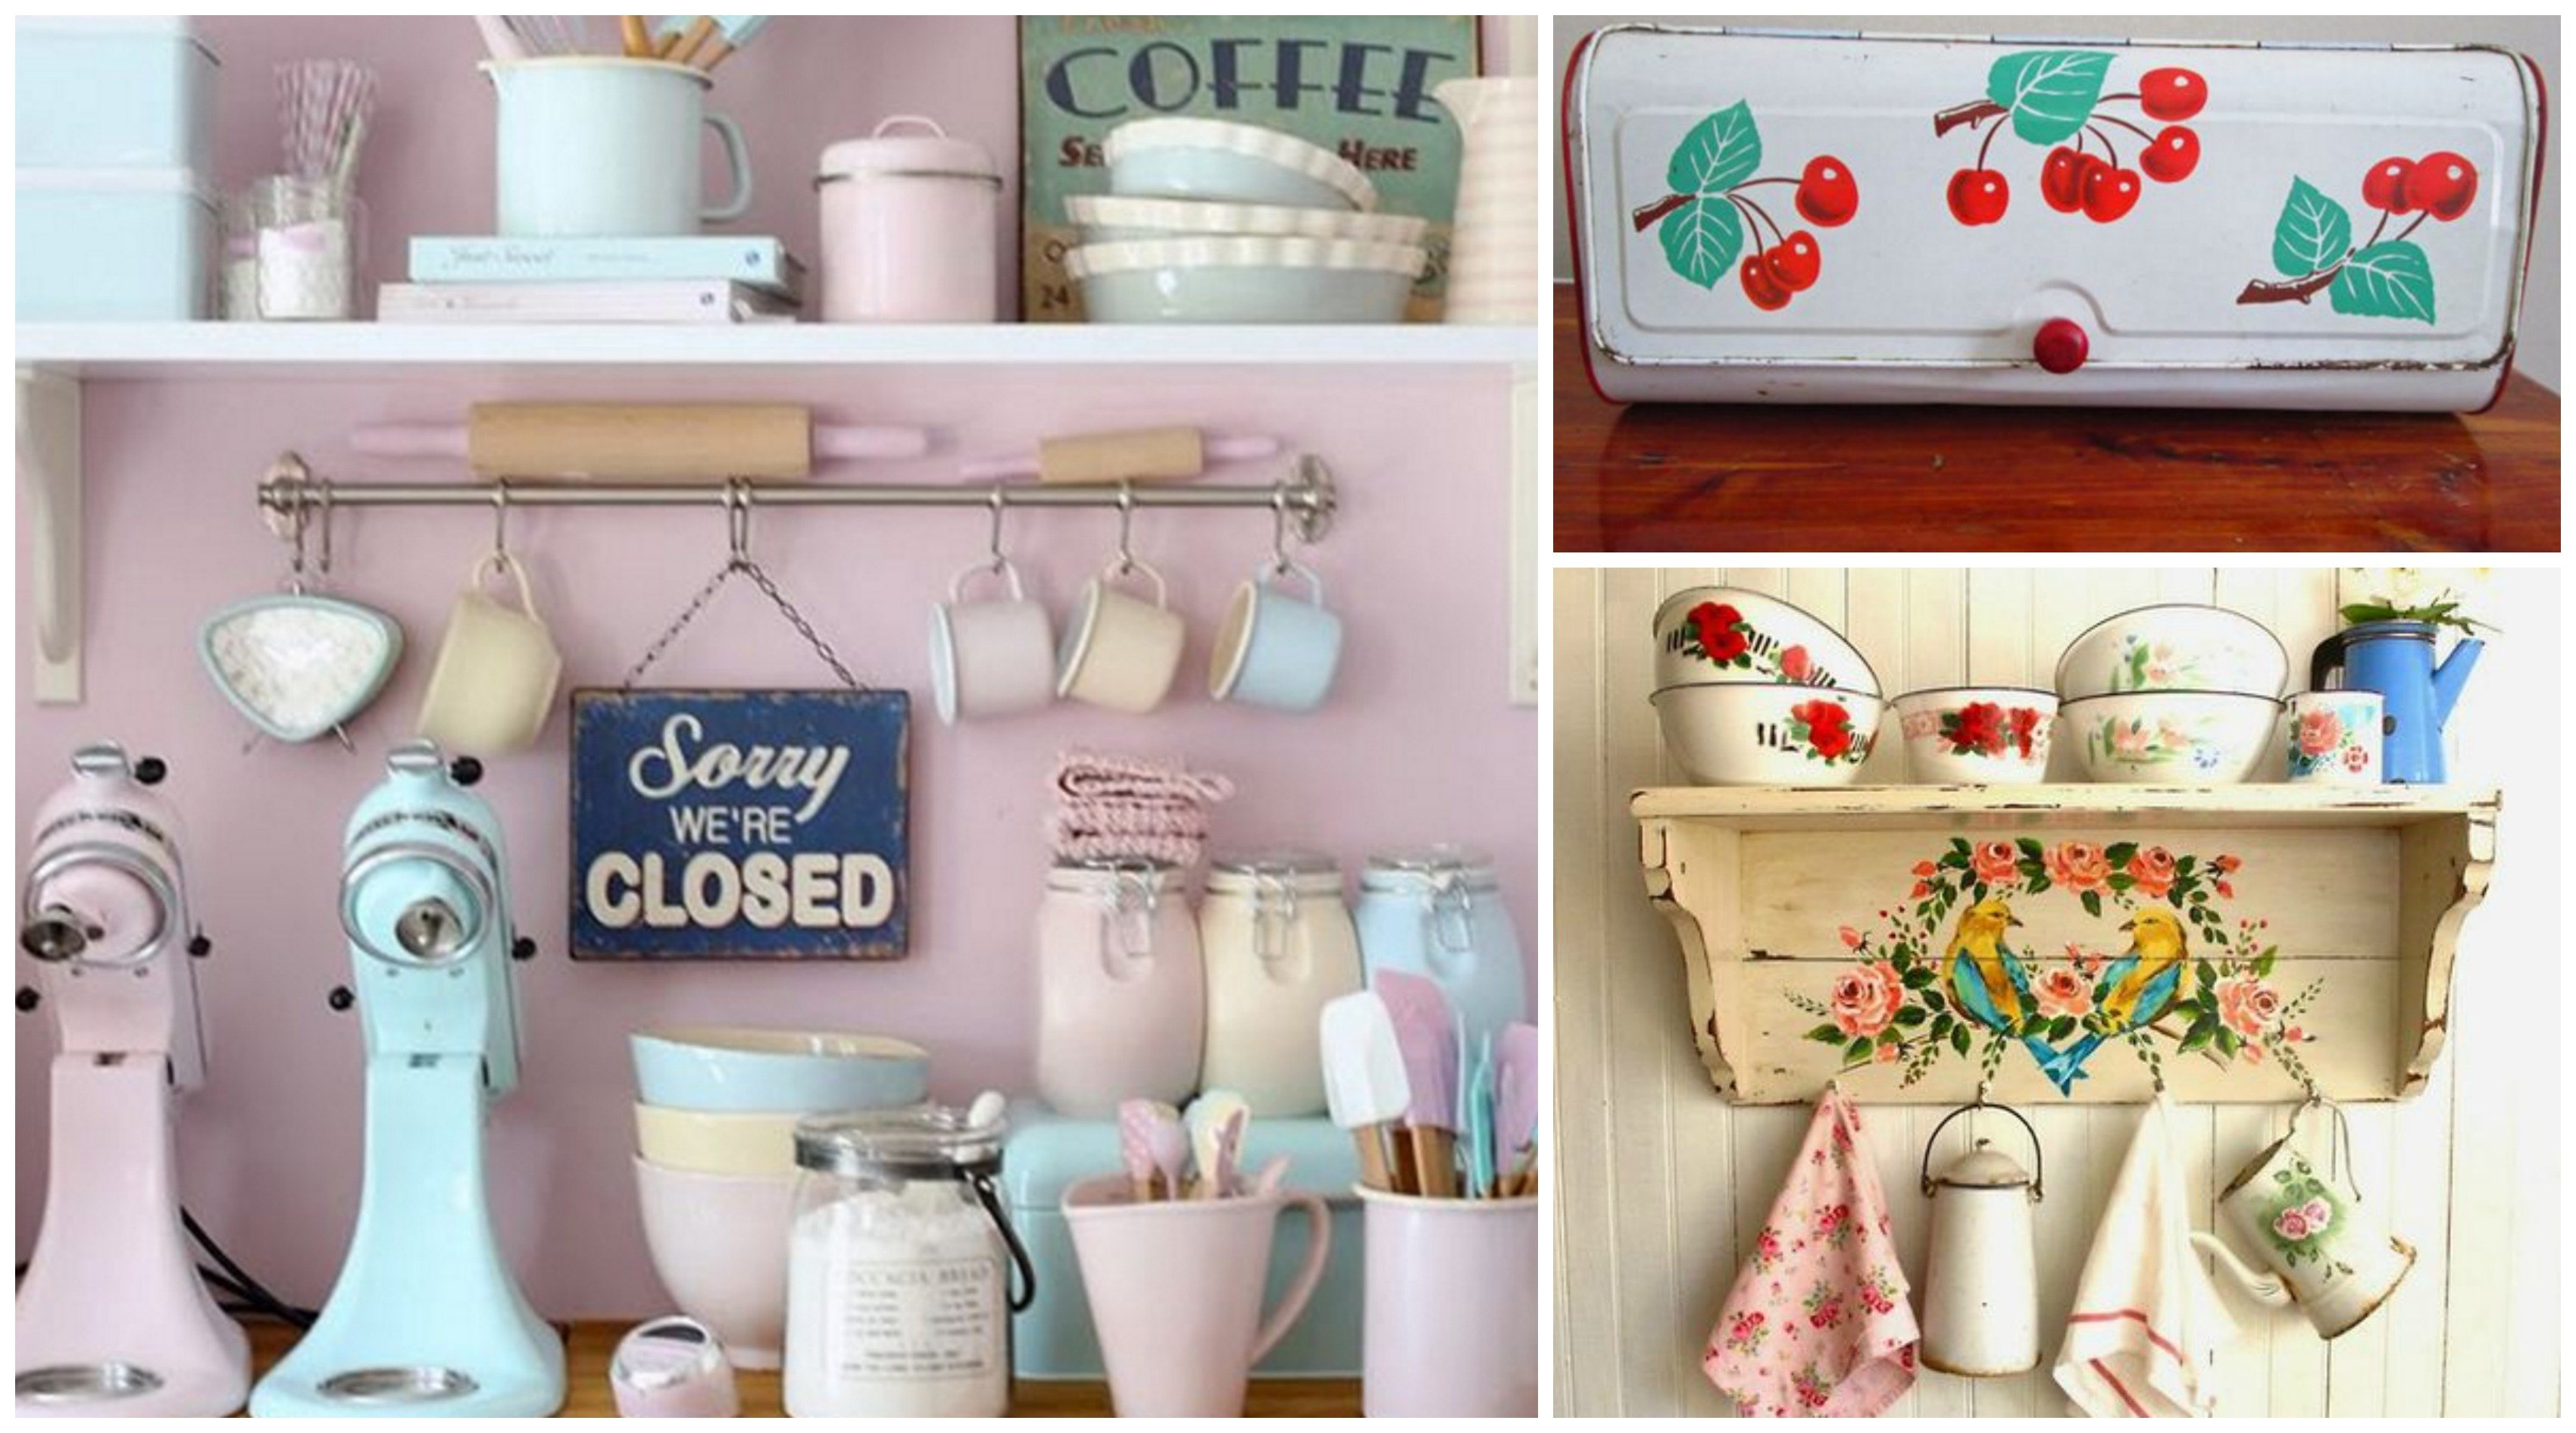 15 Essential Design Elements For A Perfectly Retro Kitchen